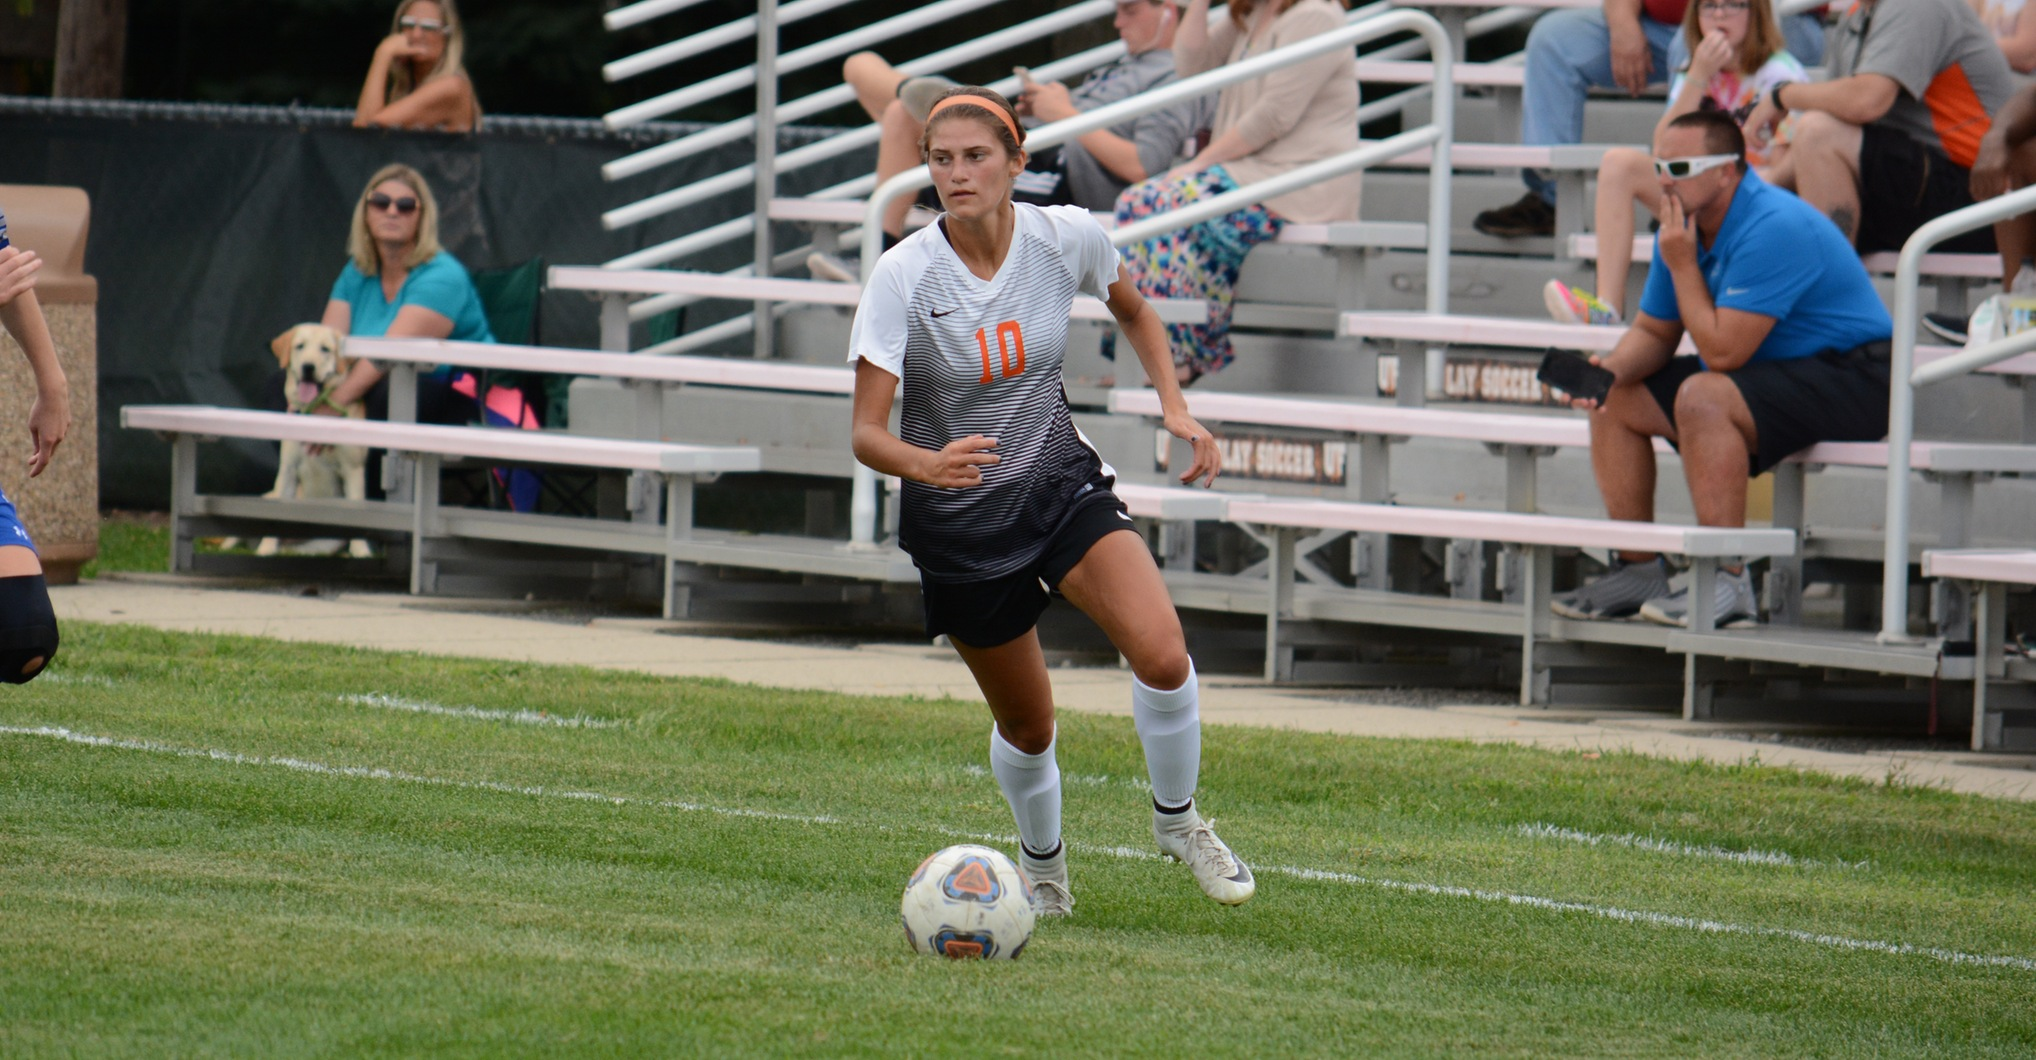 Findlay Remains Unbeaten | Earns Comeback Win at Malone